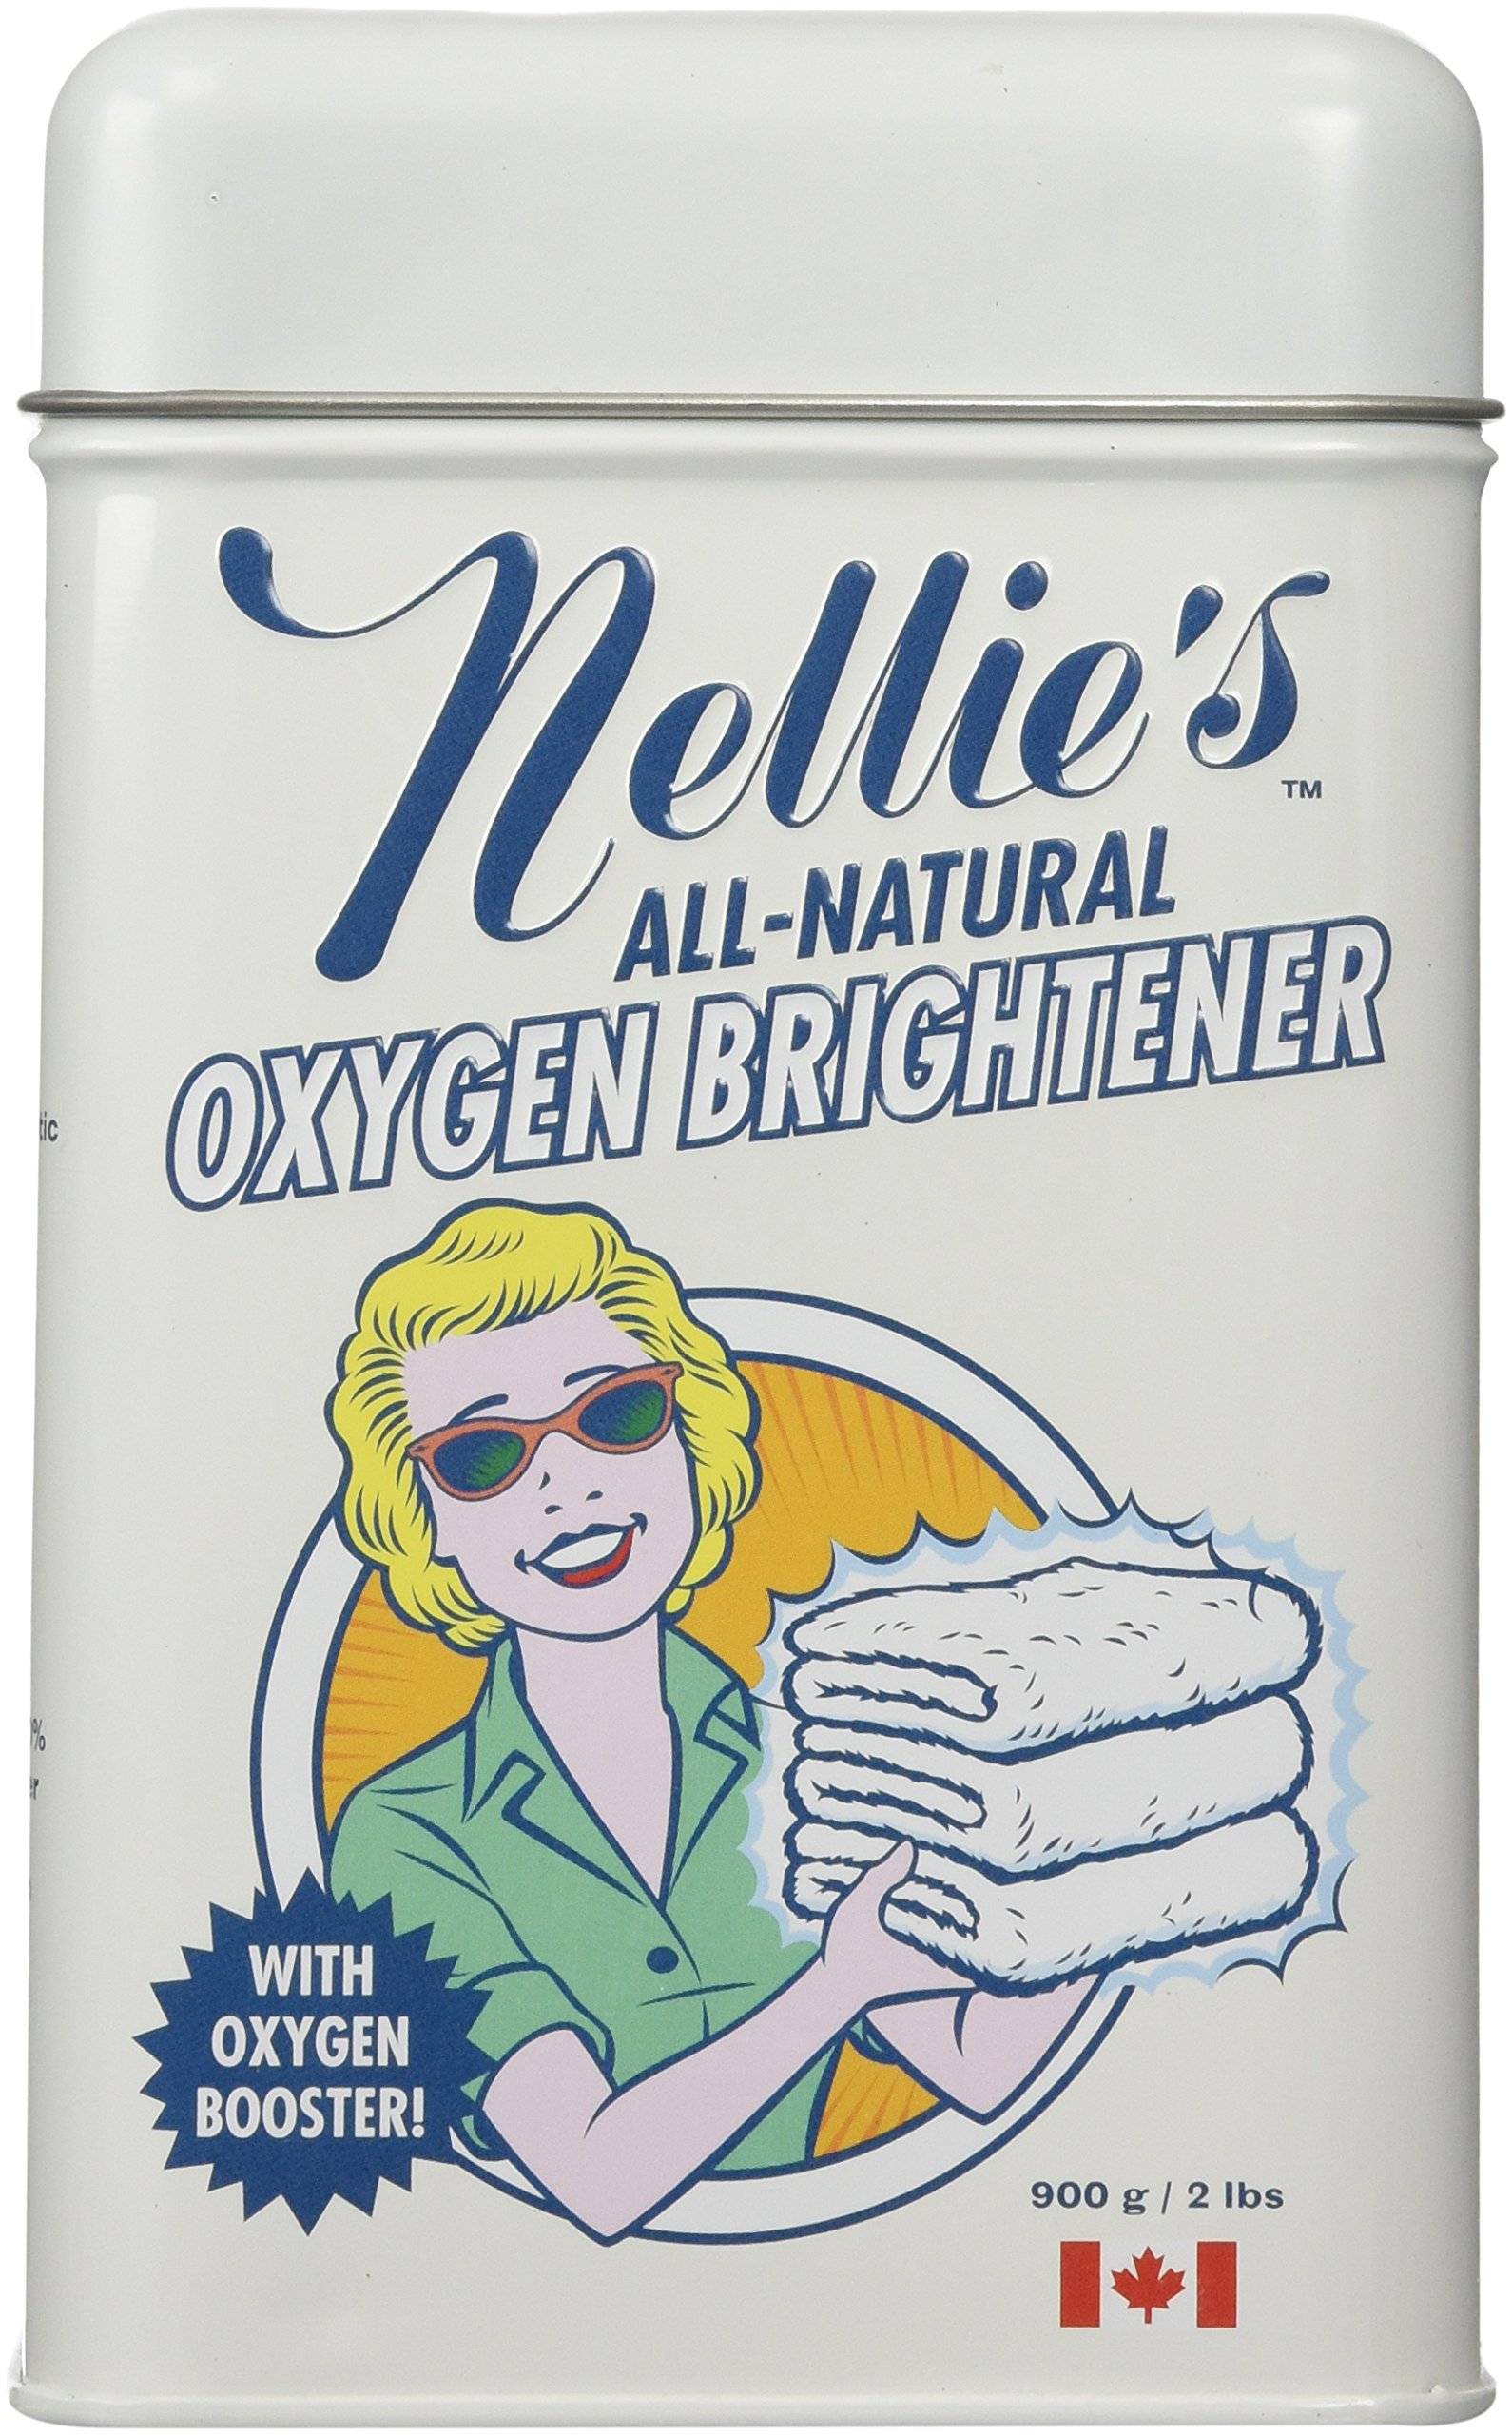 Nellie's All-Natural Oxygen Brightener Powder Tin, 2 Pound - Removes Tough Stains, Dirt and Grime